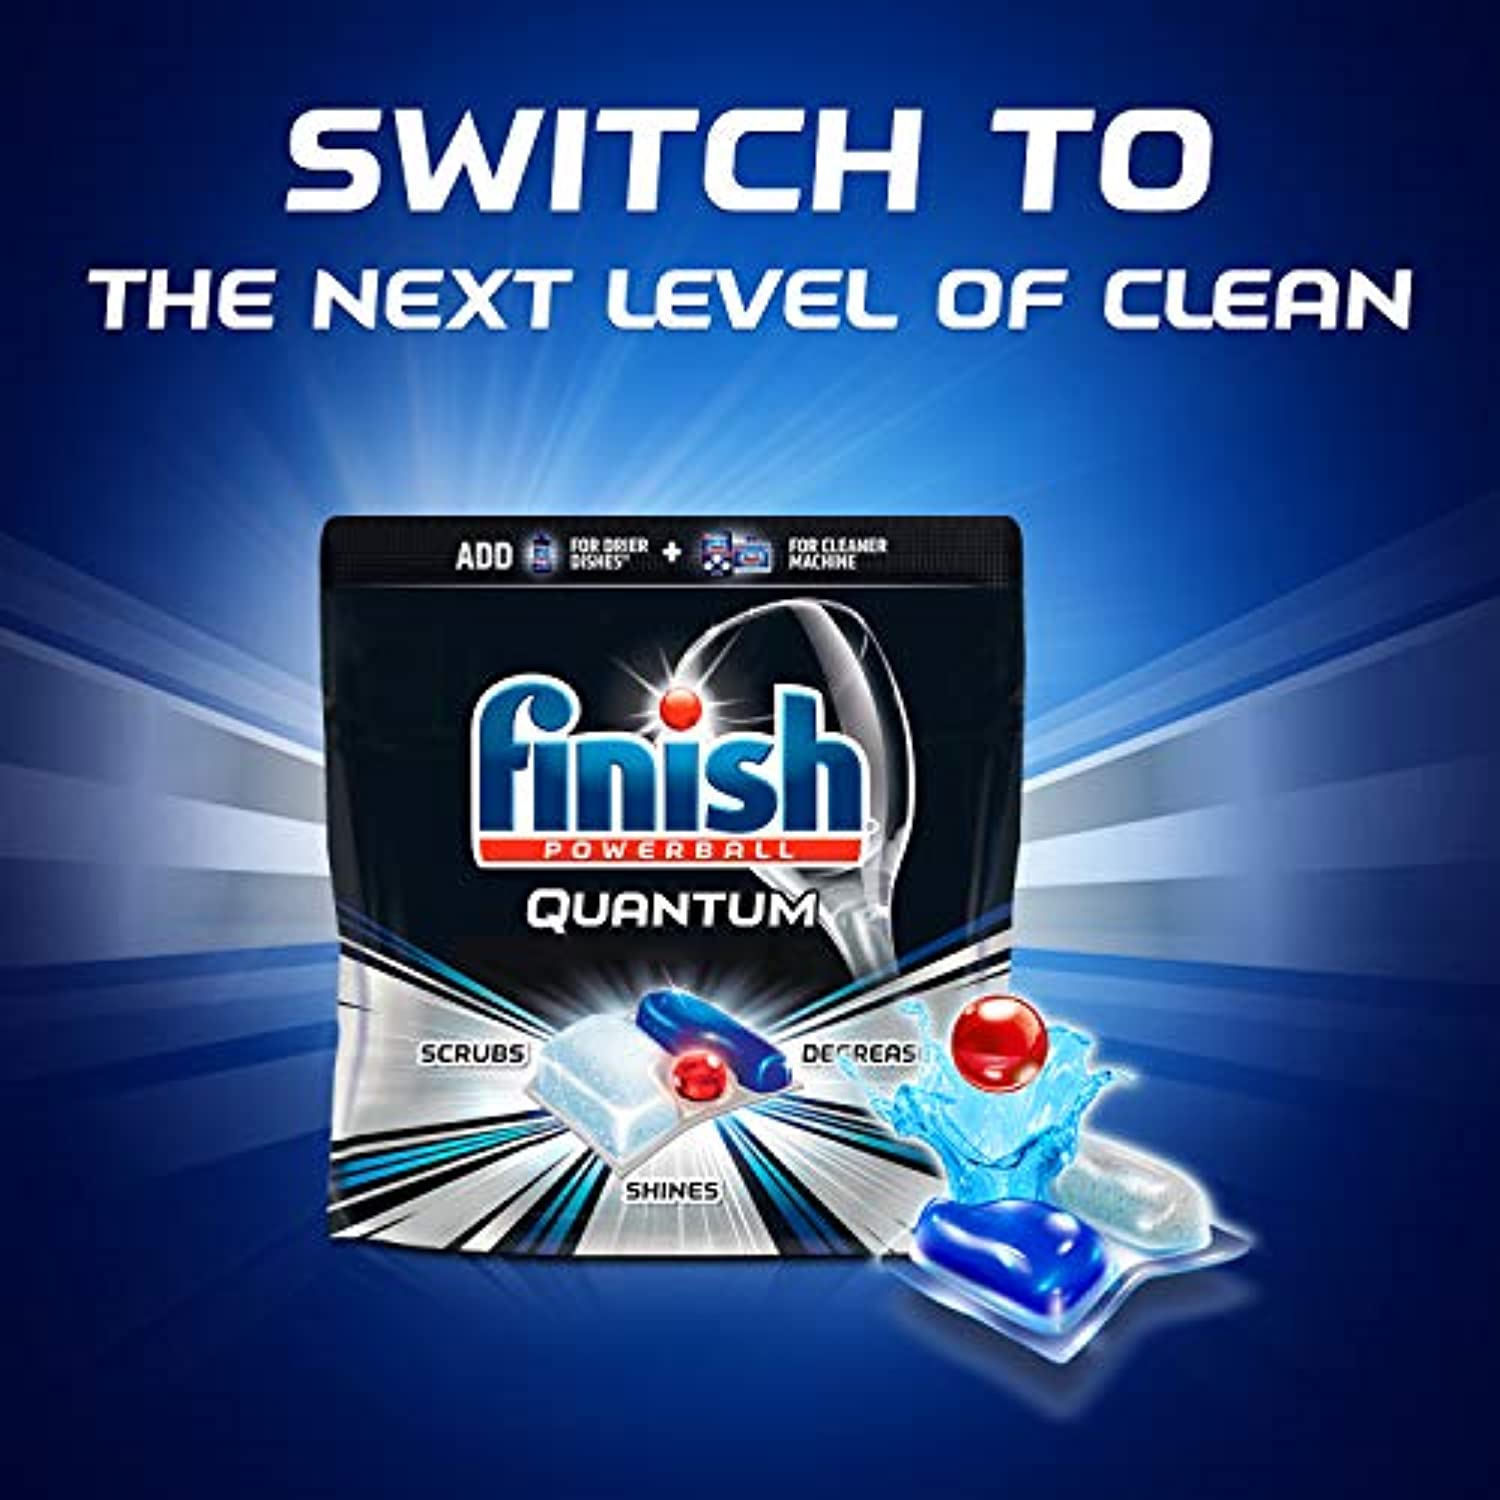 Classier: Buy Finish Dishwasher Detergent - Powerball - Pre Wrapped Dishwashing Tablets